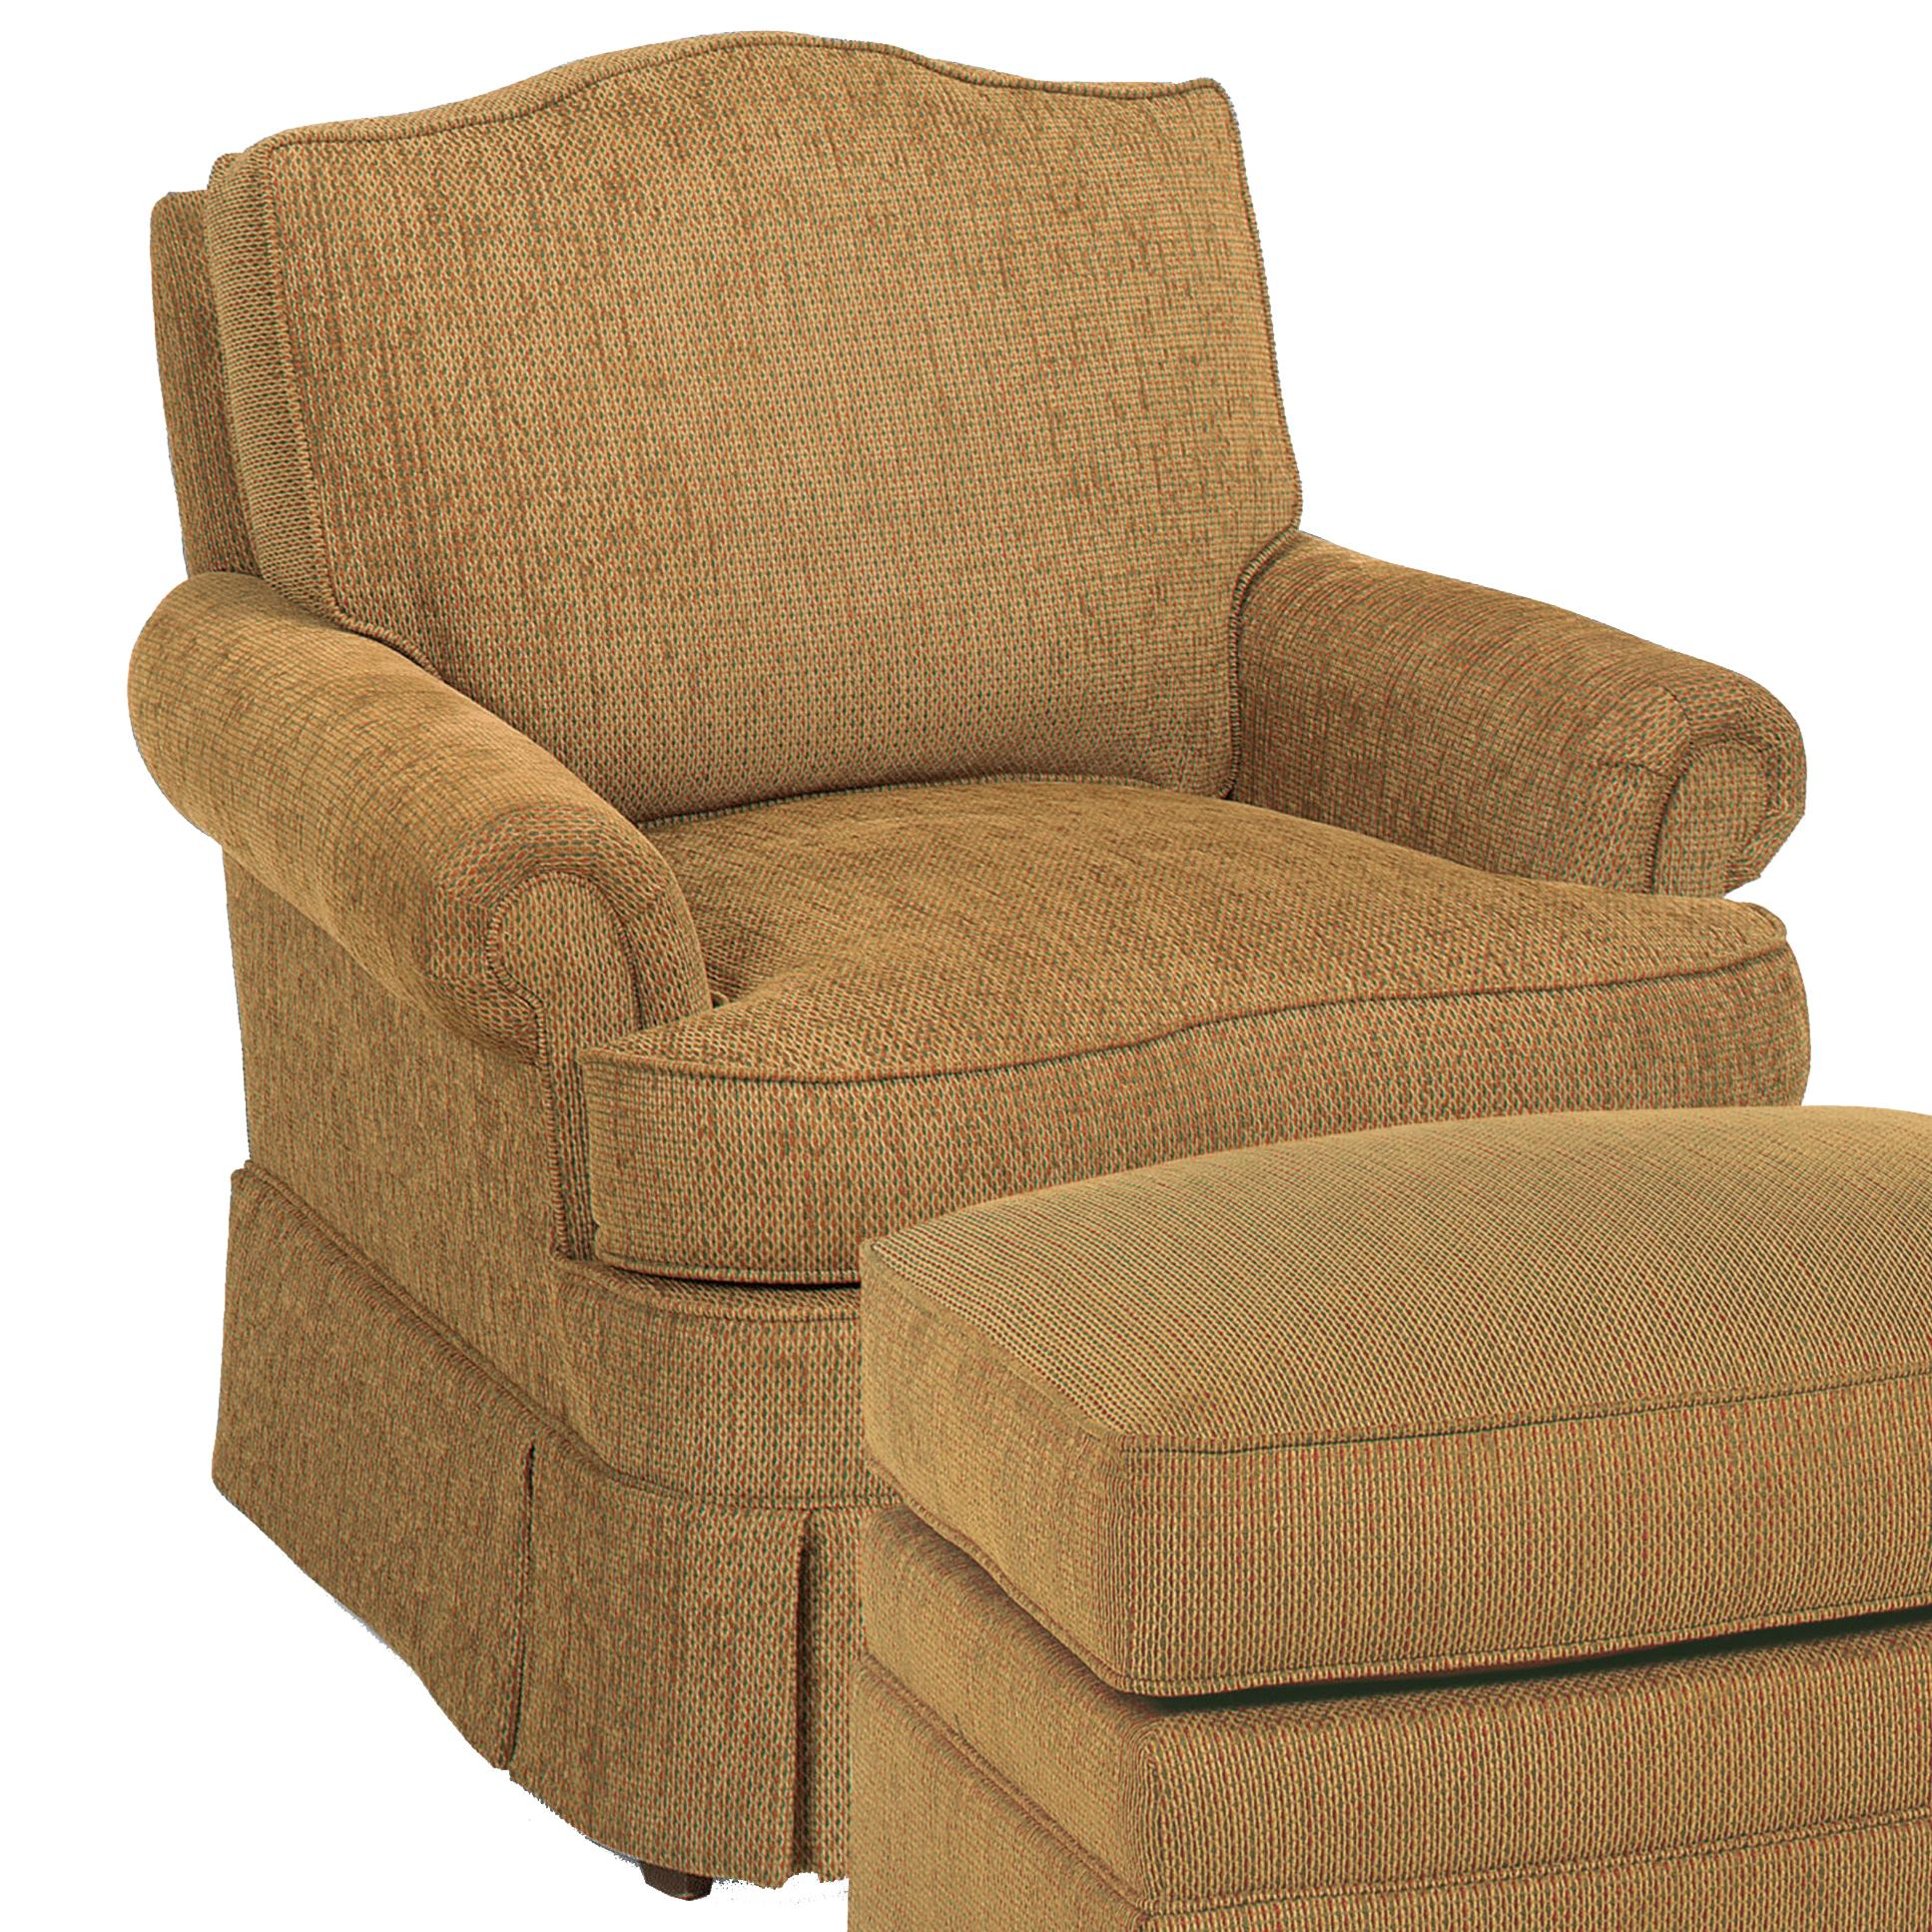 Fairfield Chairs Swivel Chair - Item Number: 1454-31